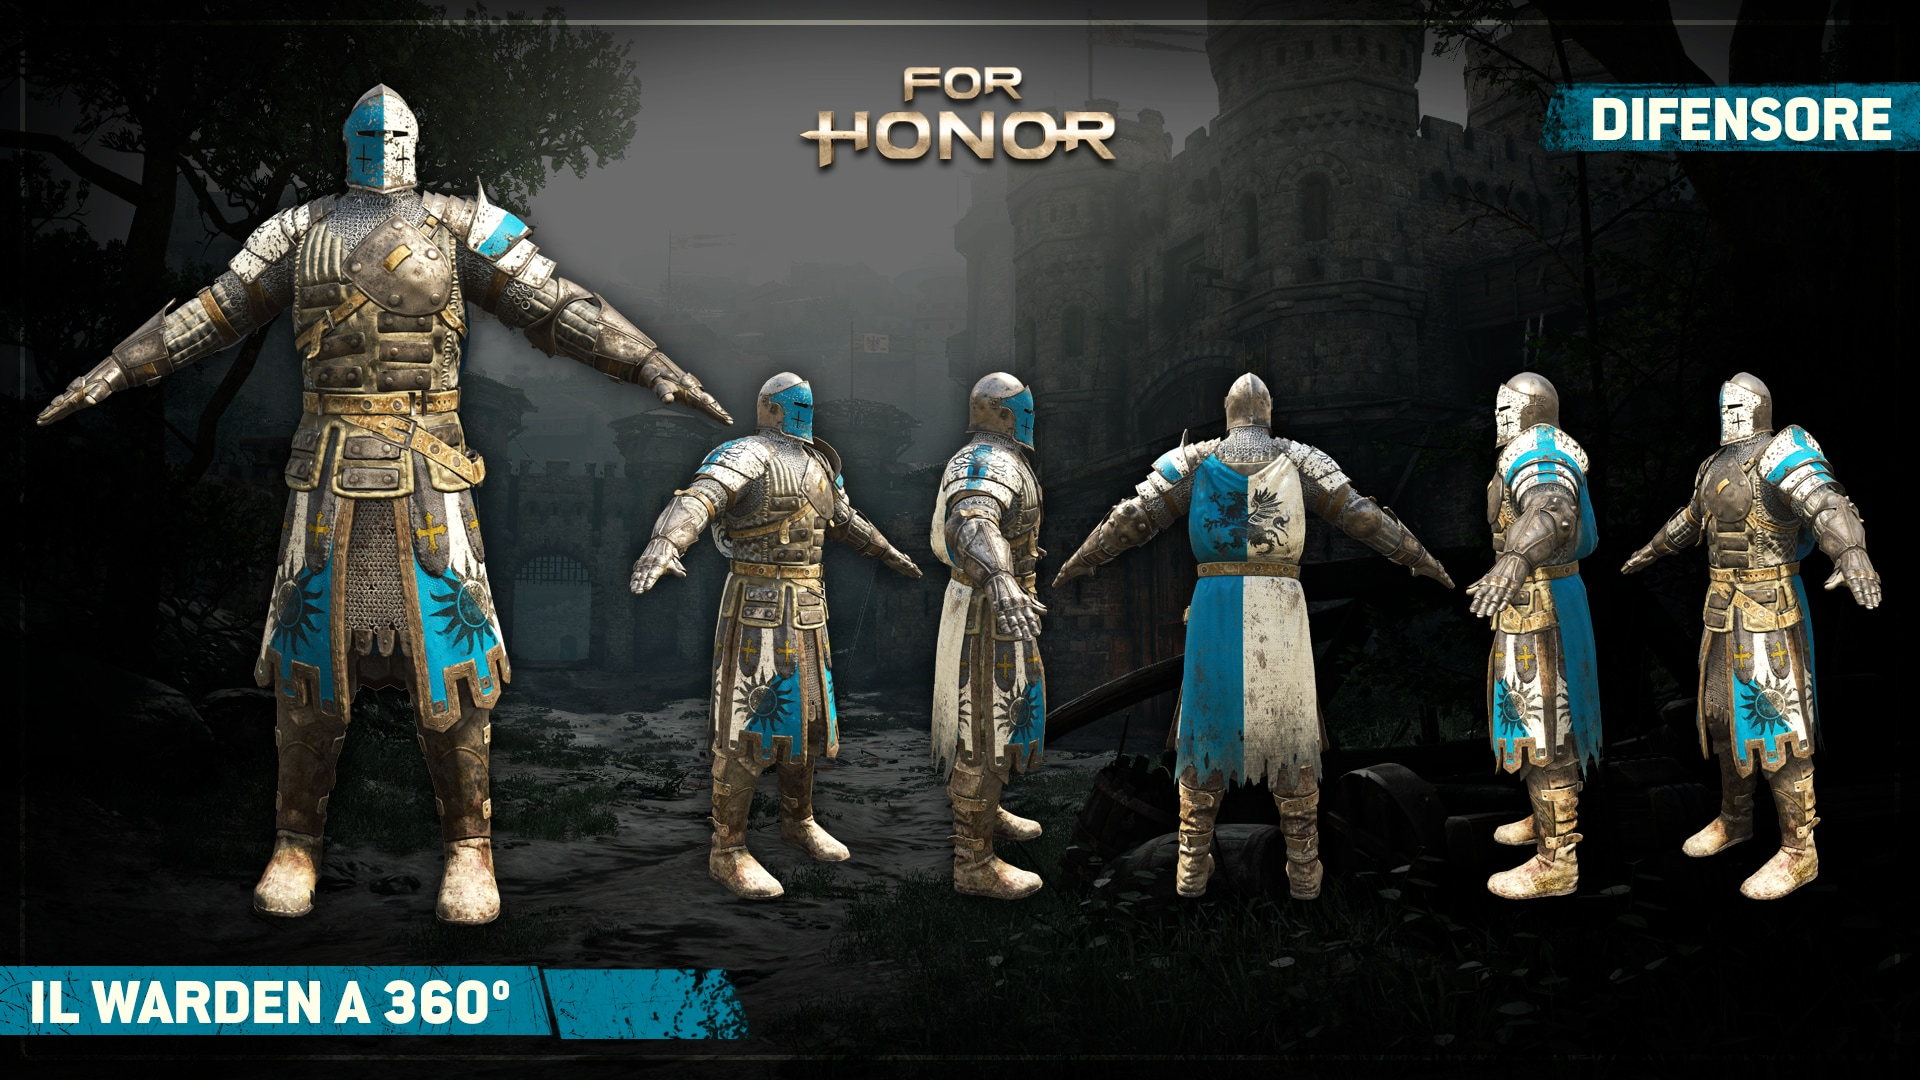 The Warden 360